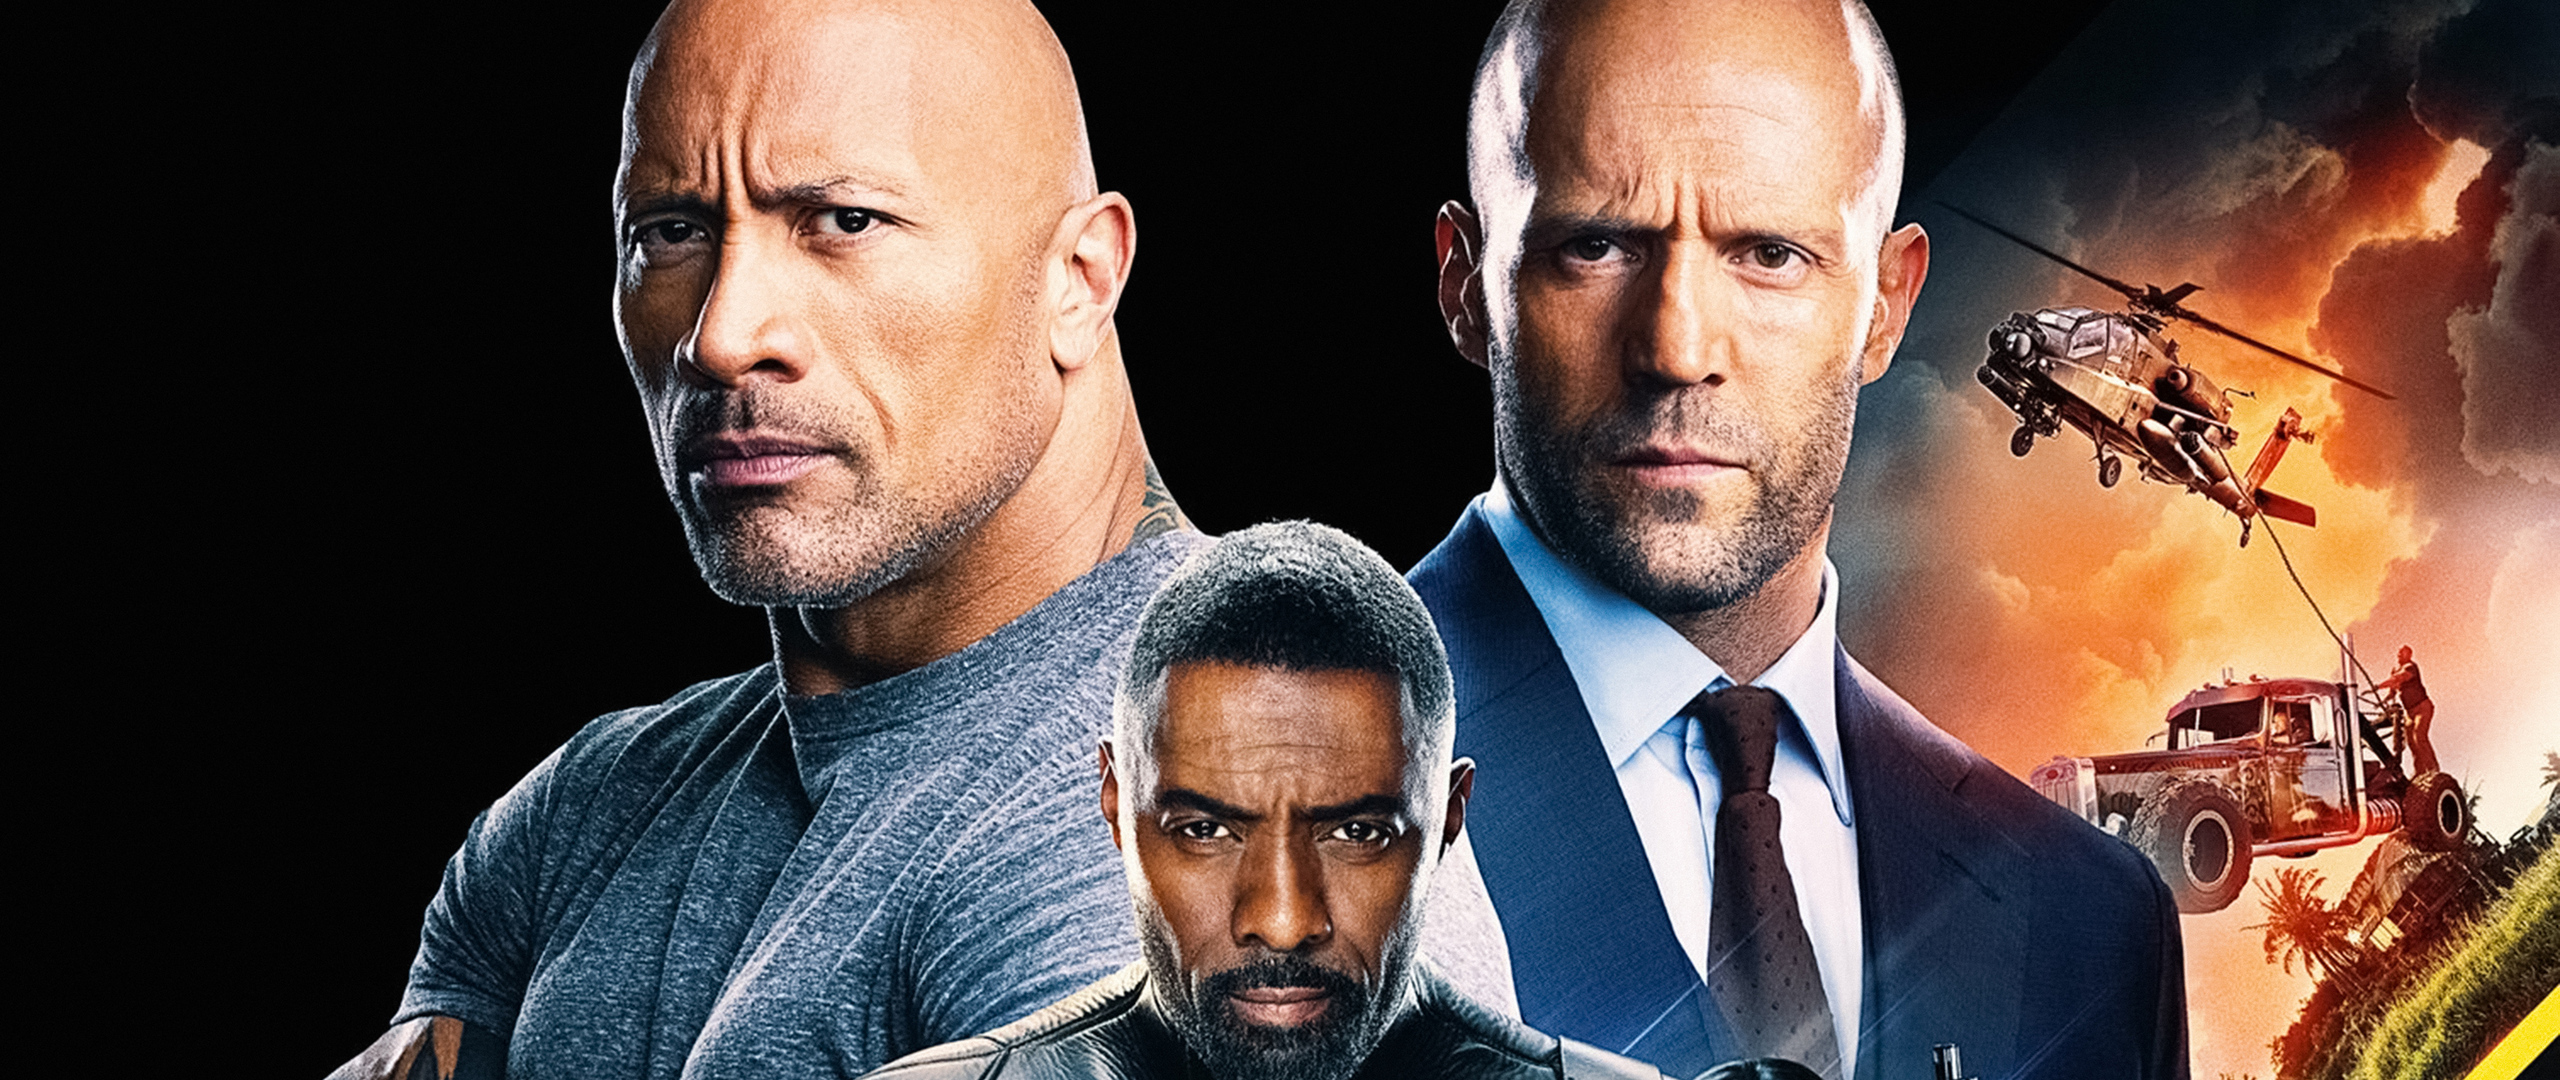 hobbs-and-shaw-2019-4k-vi.jpg